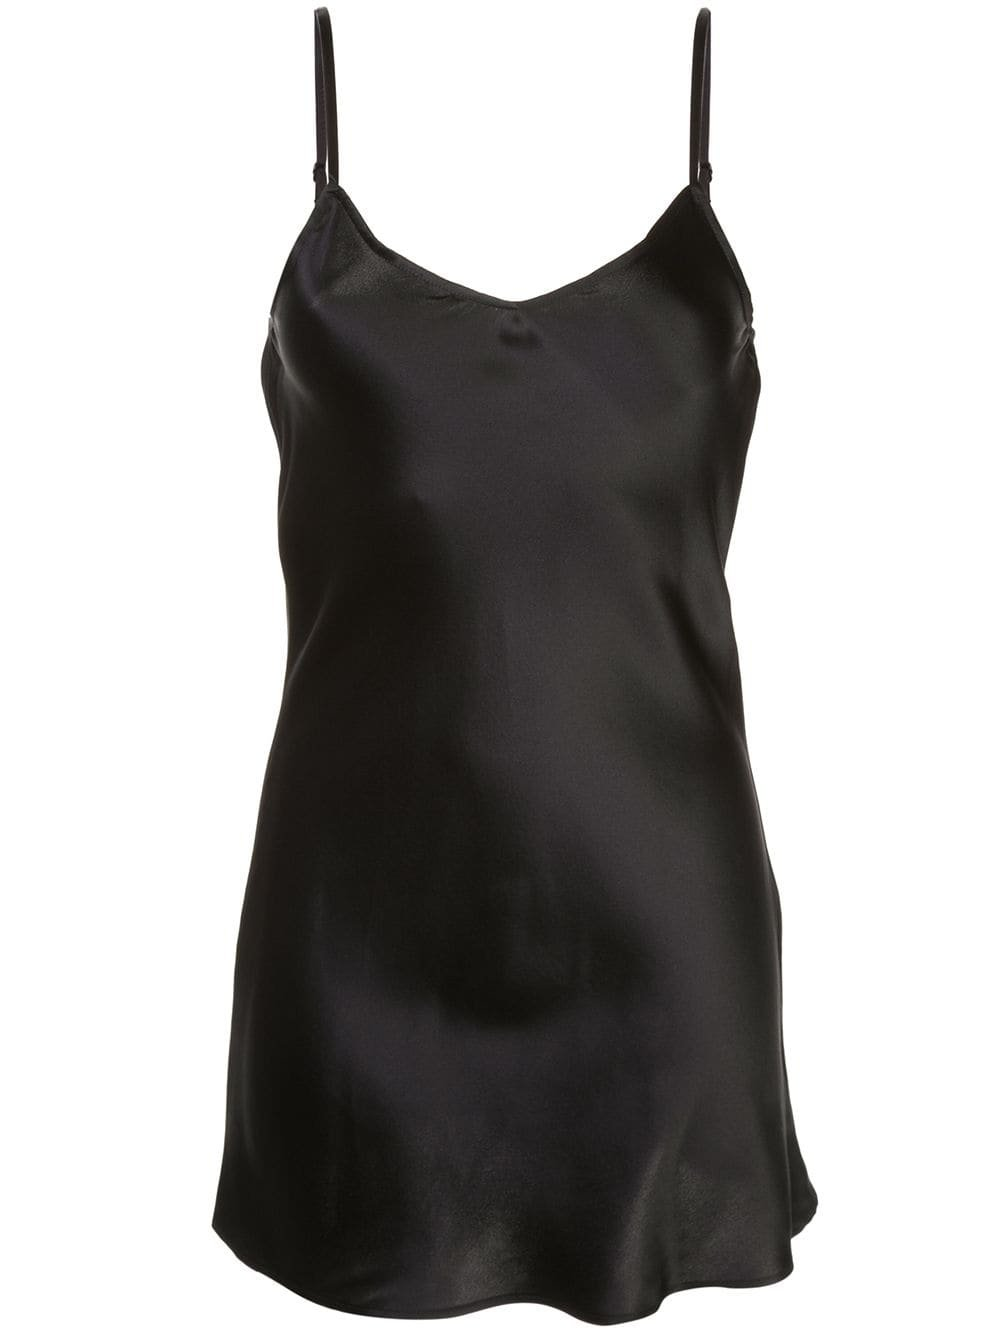 Reformation Roza mini slip dress $198 - Buy Online - Mobile Friendly, Fast Delivery, Price